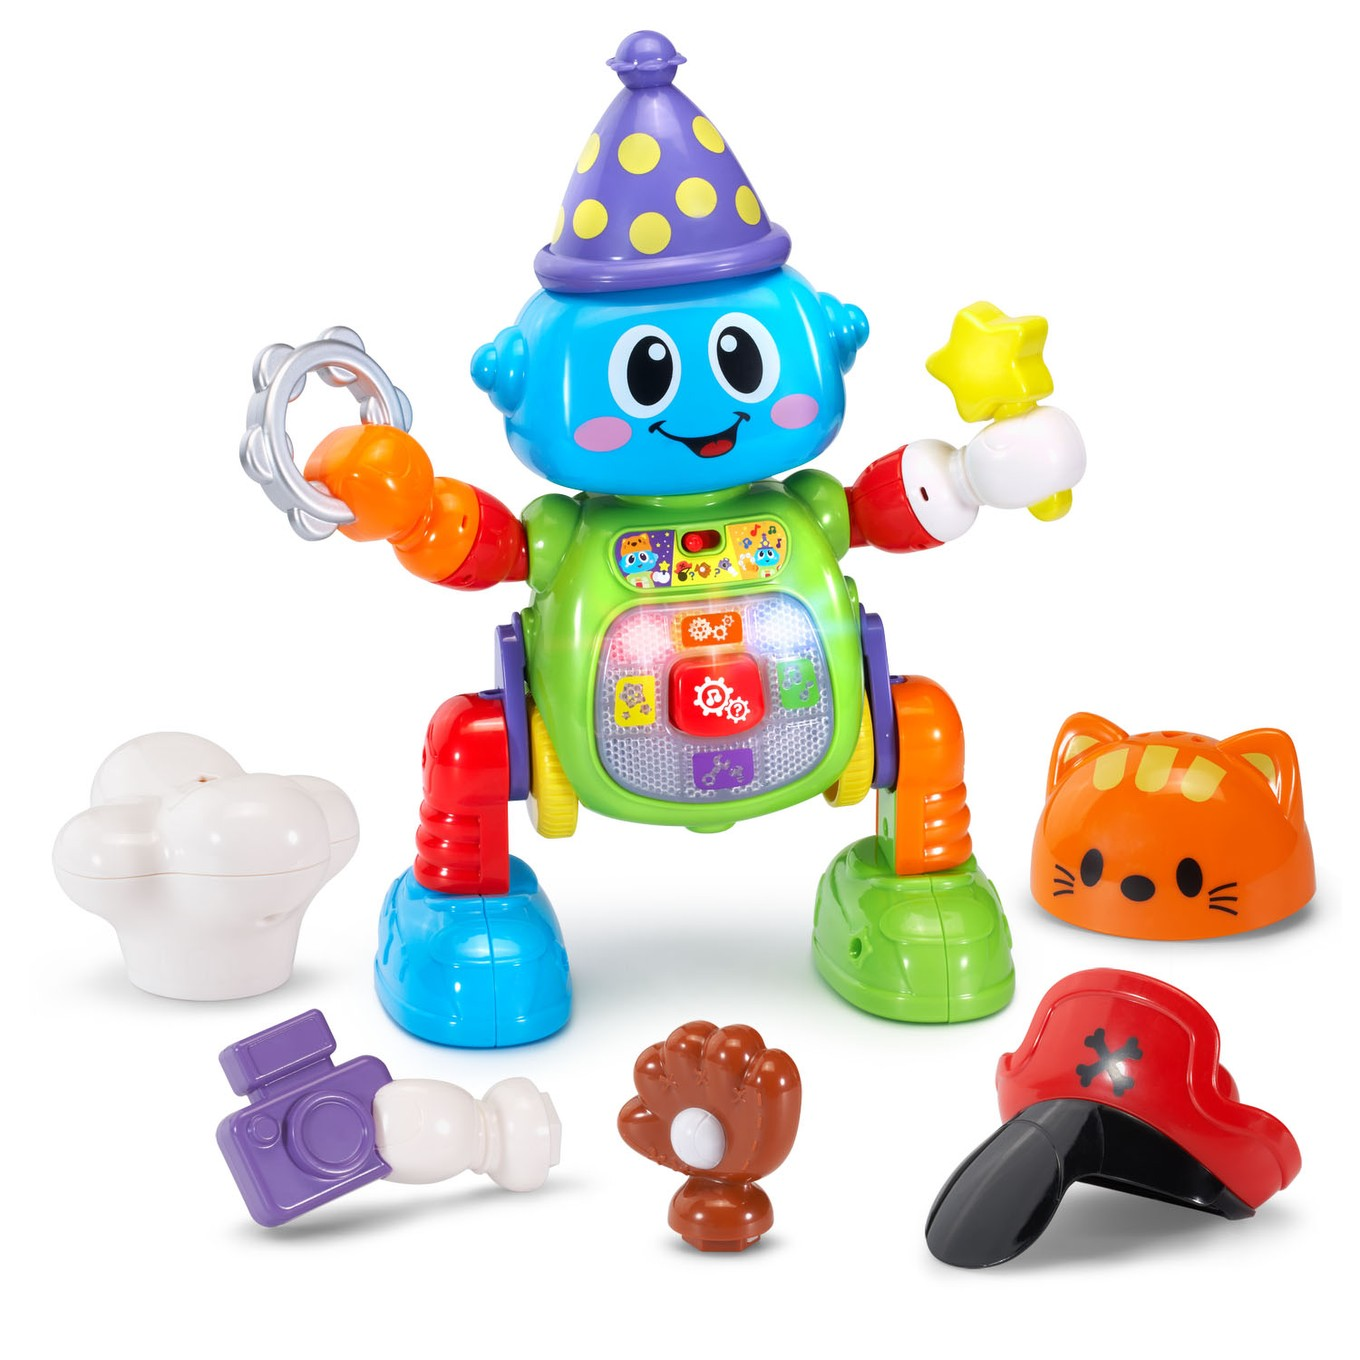 Latest Educational Toys : Vtech launches new baby infant and preschool learning